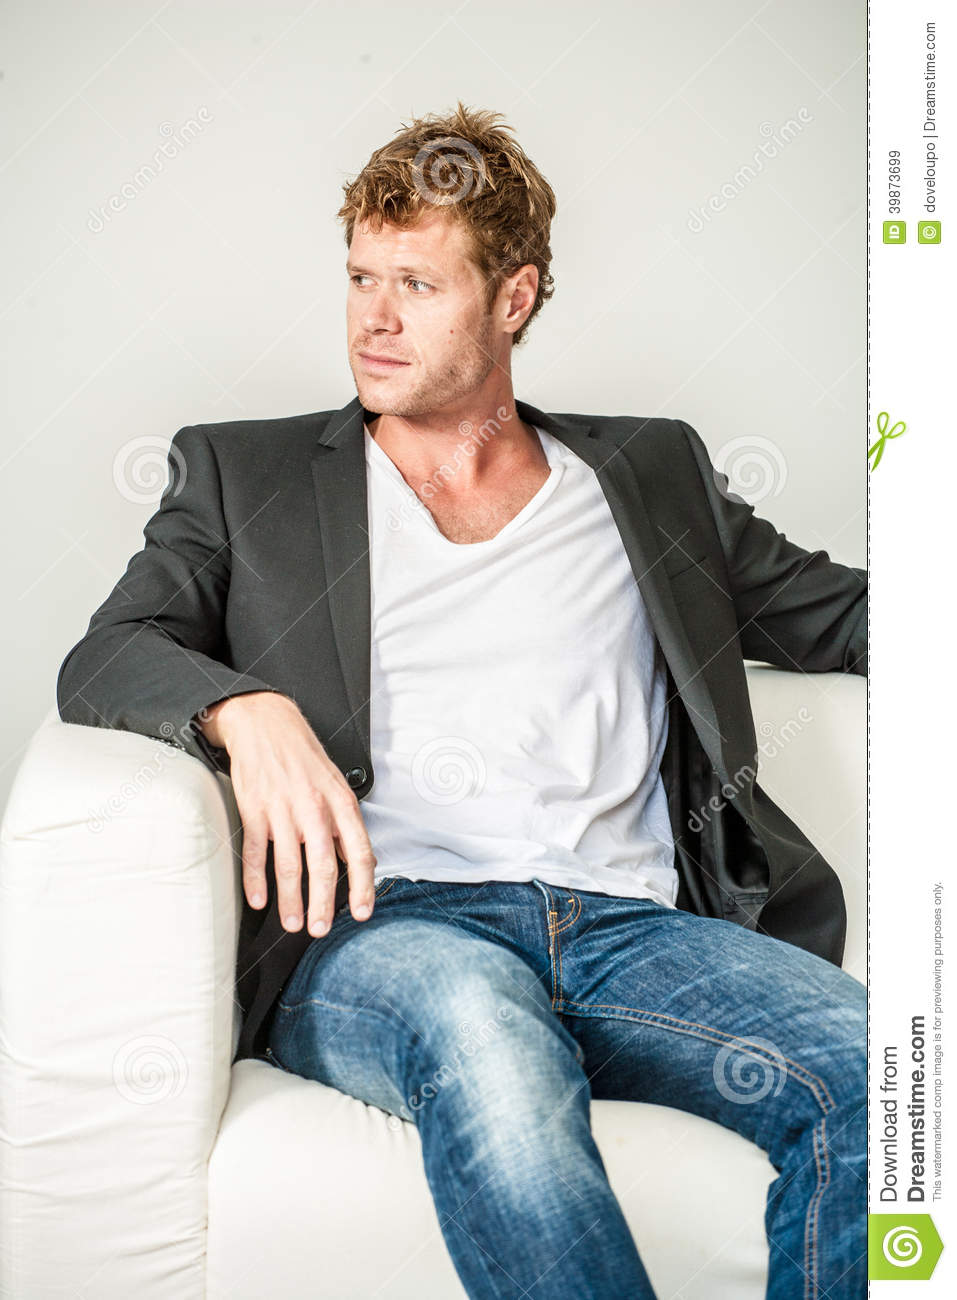 Sofa Model L Young Man In Jeans And Dinner Jacket Stock Image - Image